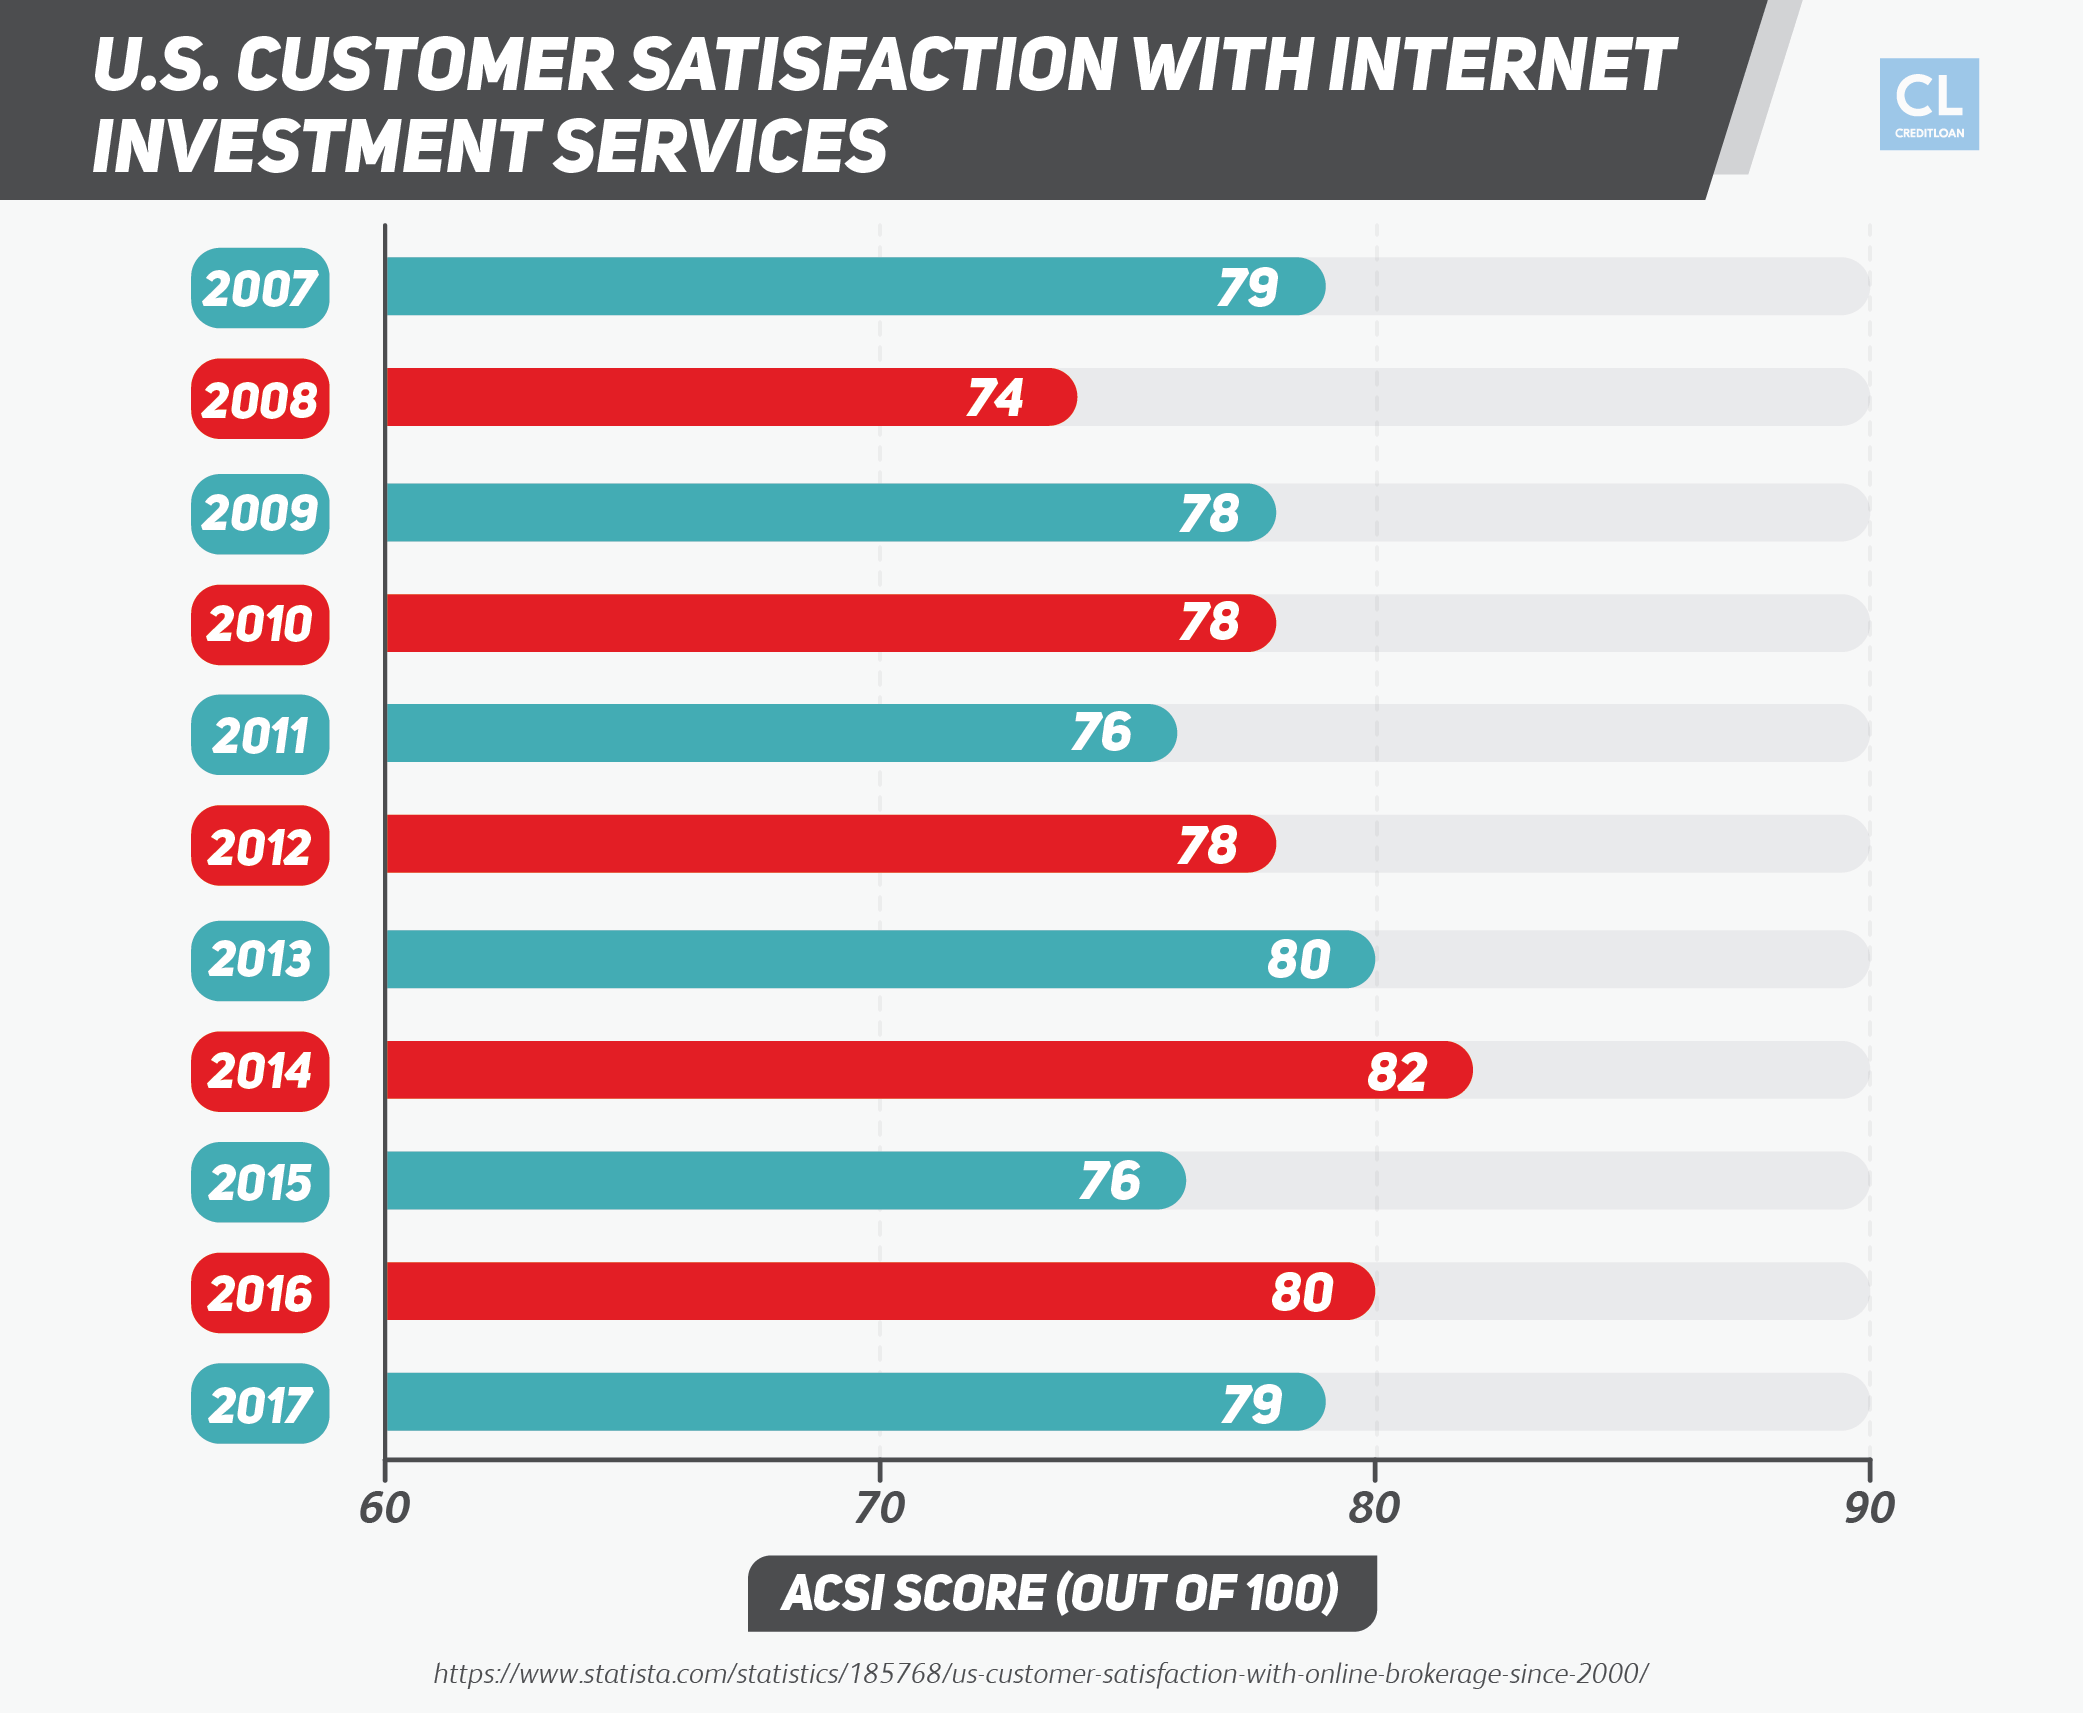 U.S. Customer Satisfaction with Internet Investment Services from 2007-2017